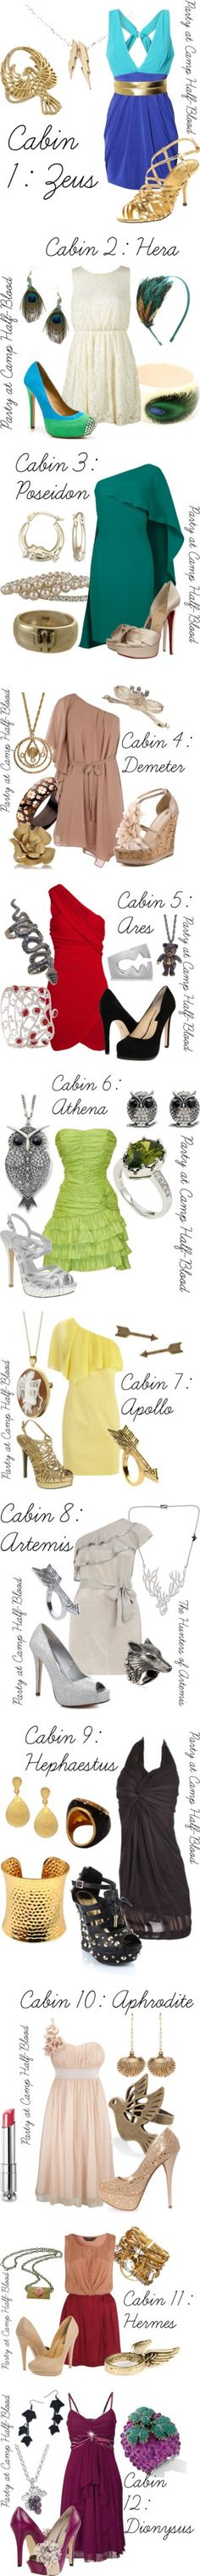 """Percy Jackson: Cabins"" by ellalea ❤ liked on Polyvore"